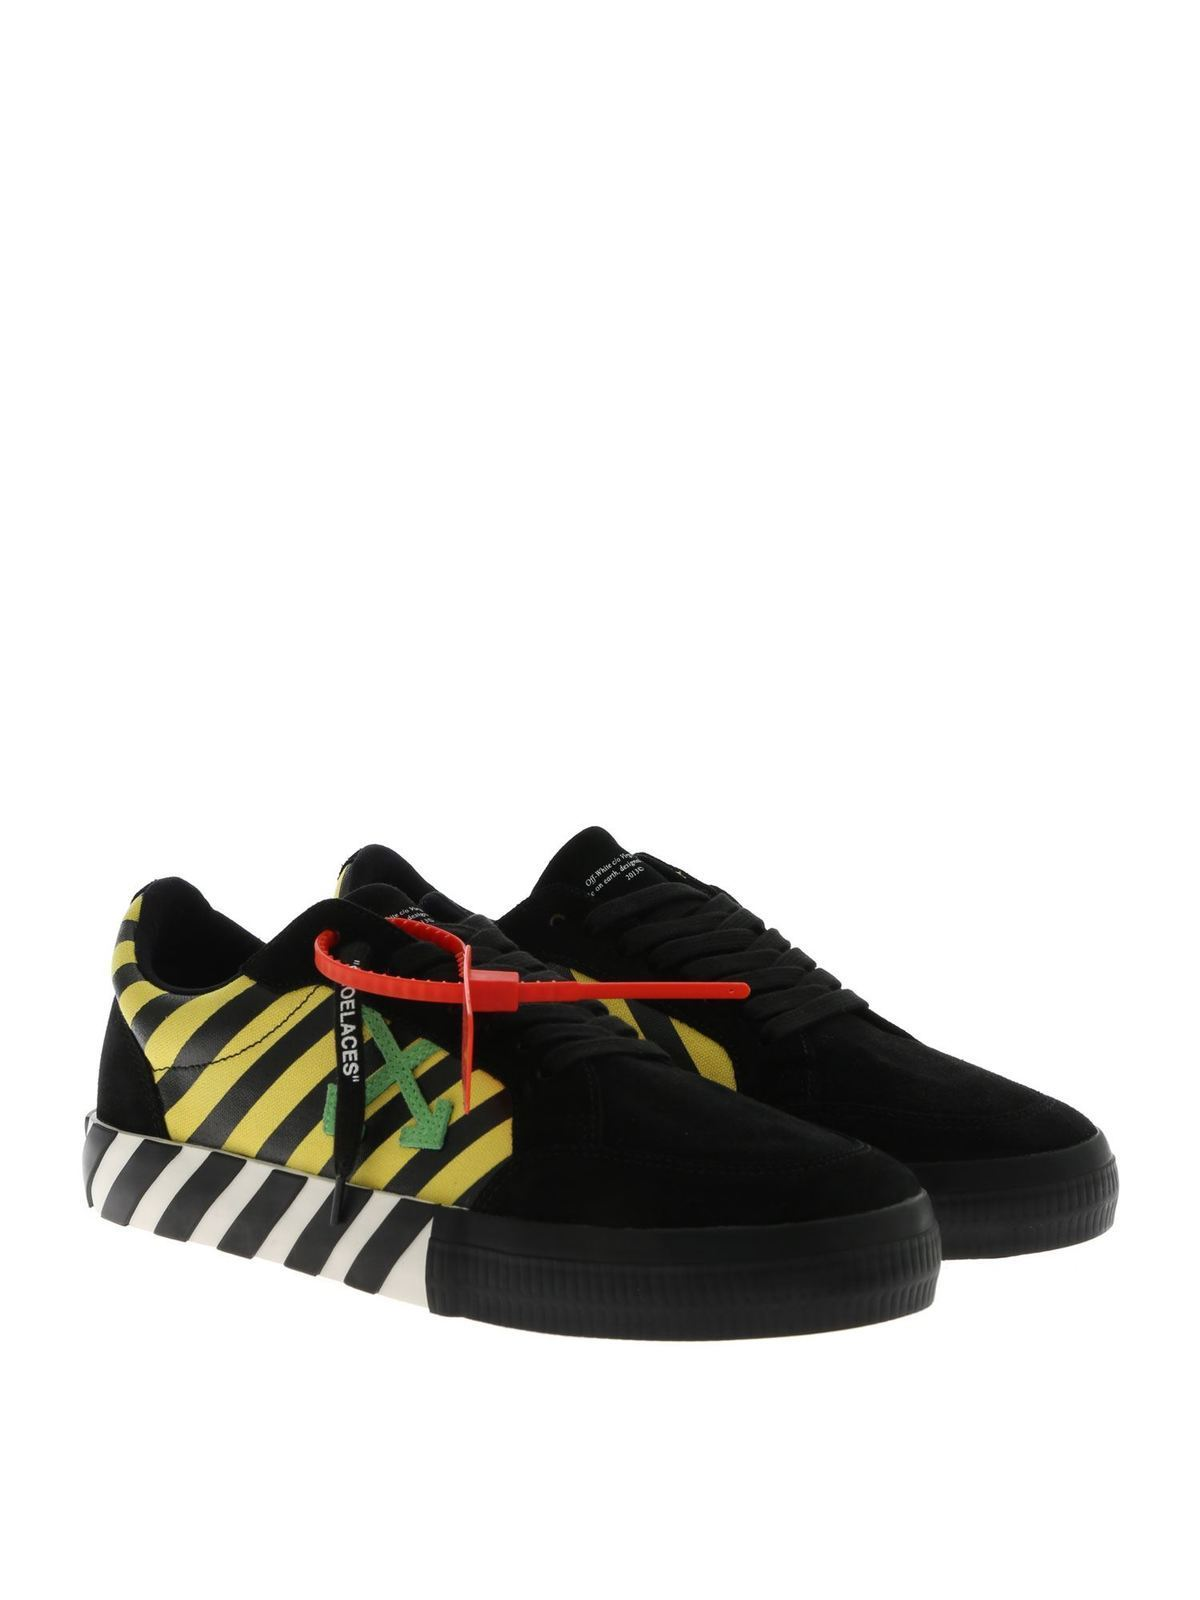 Off-White - Low Vulcanized sneakers